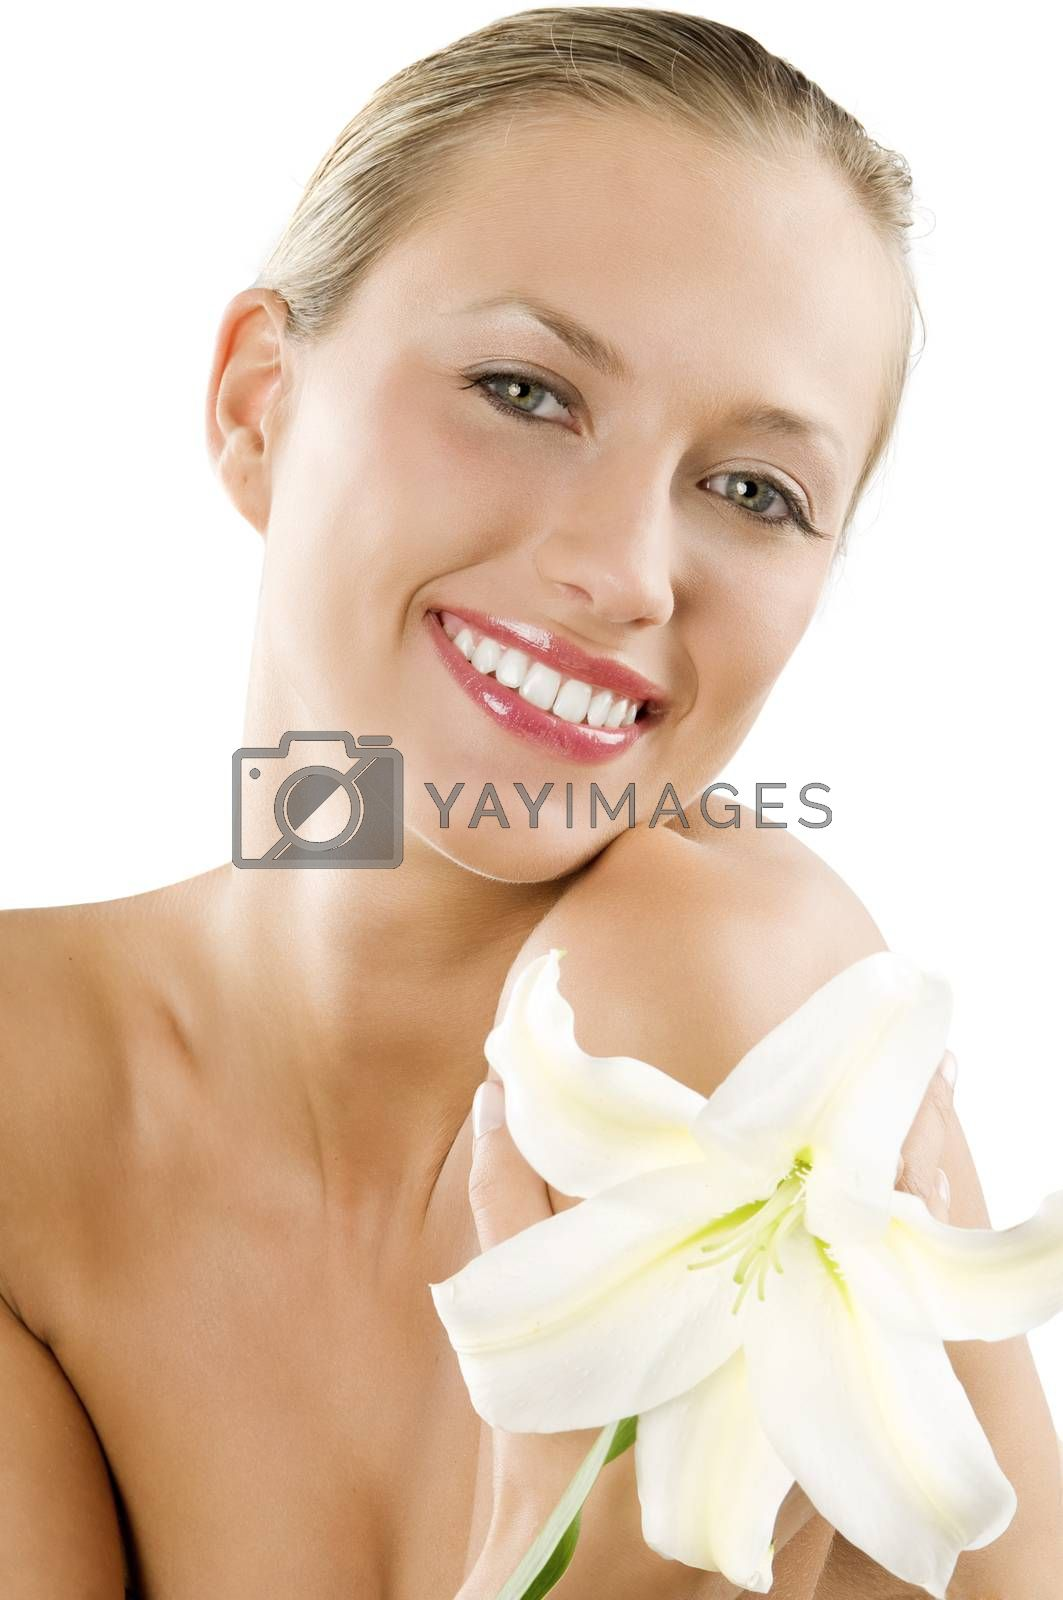 Royalty free image of blond girl smiling by fotoCD